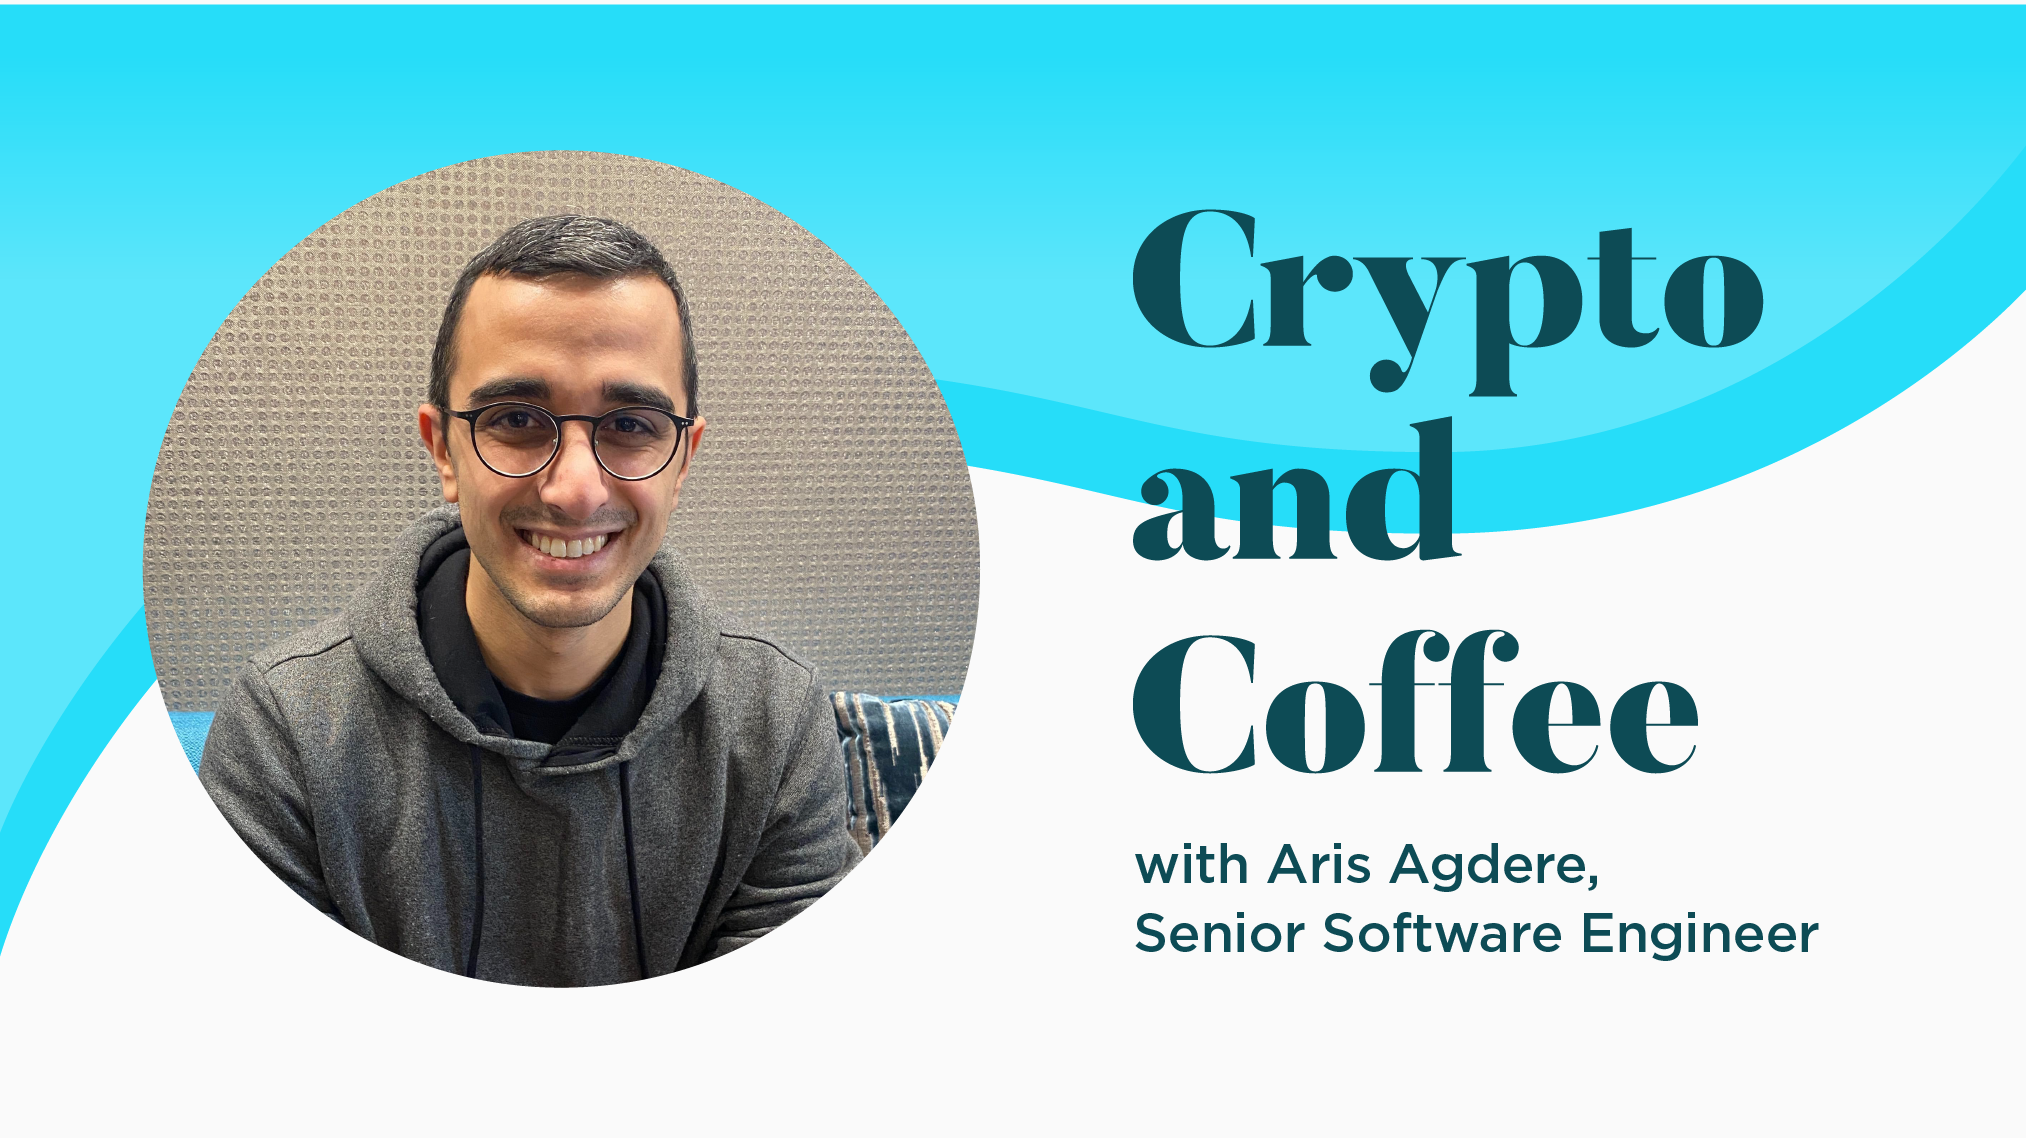 Crypto and Coffee Q&A with Gemini: Aris Agdere, Senior Software Engineer